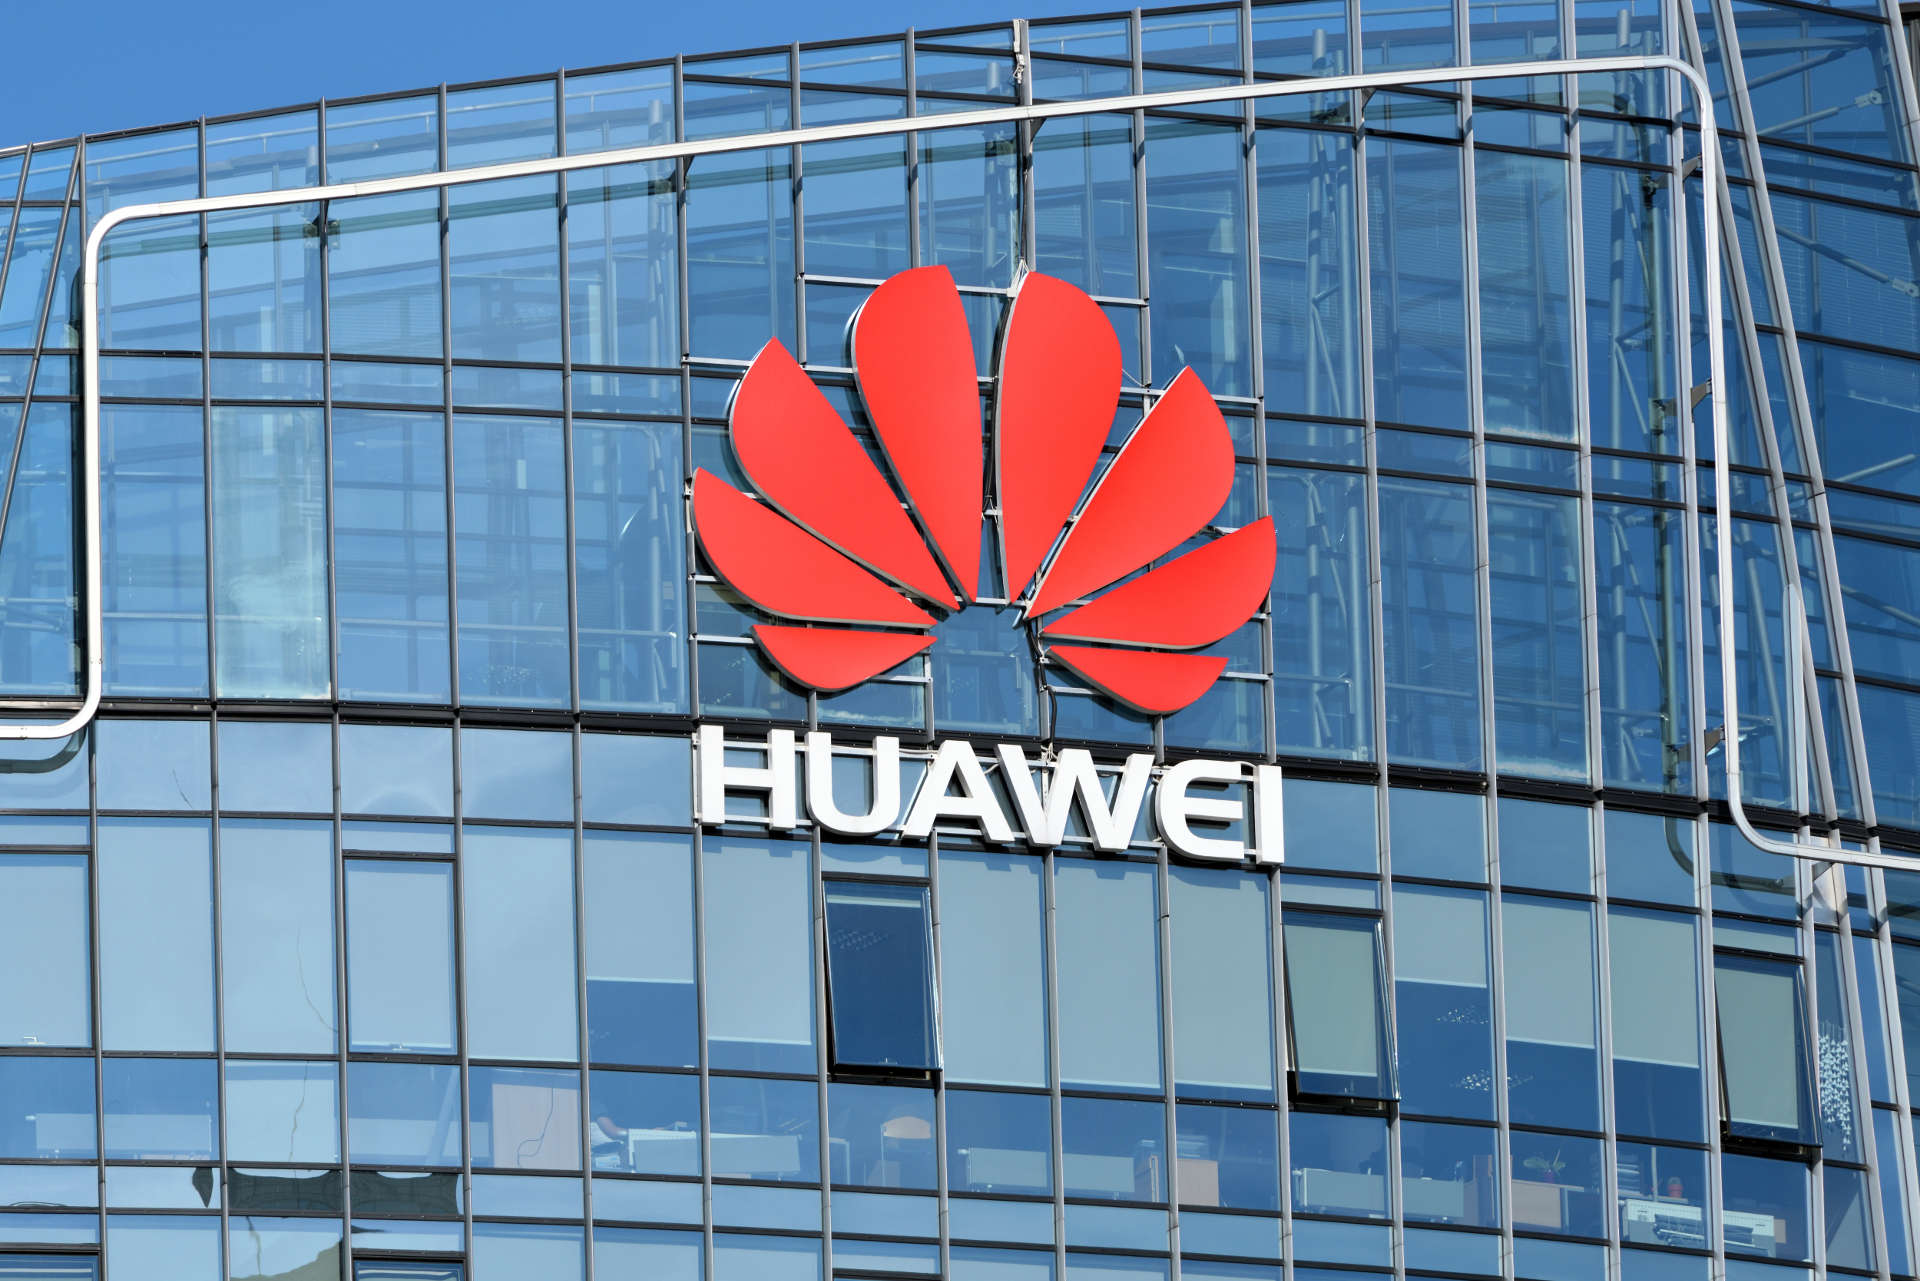 Challenging year ahead for tech giant Huawei